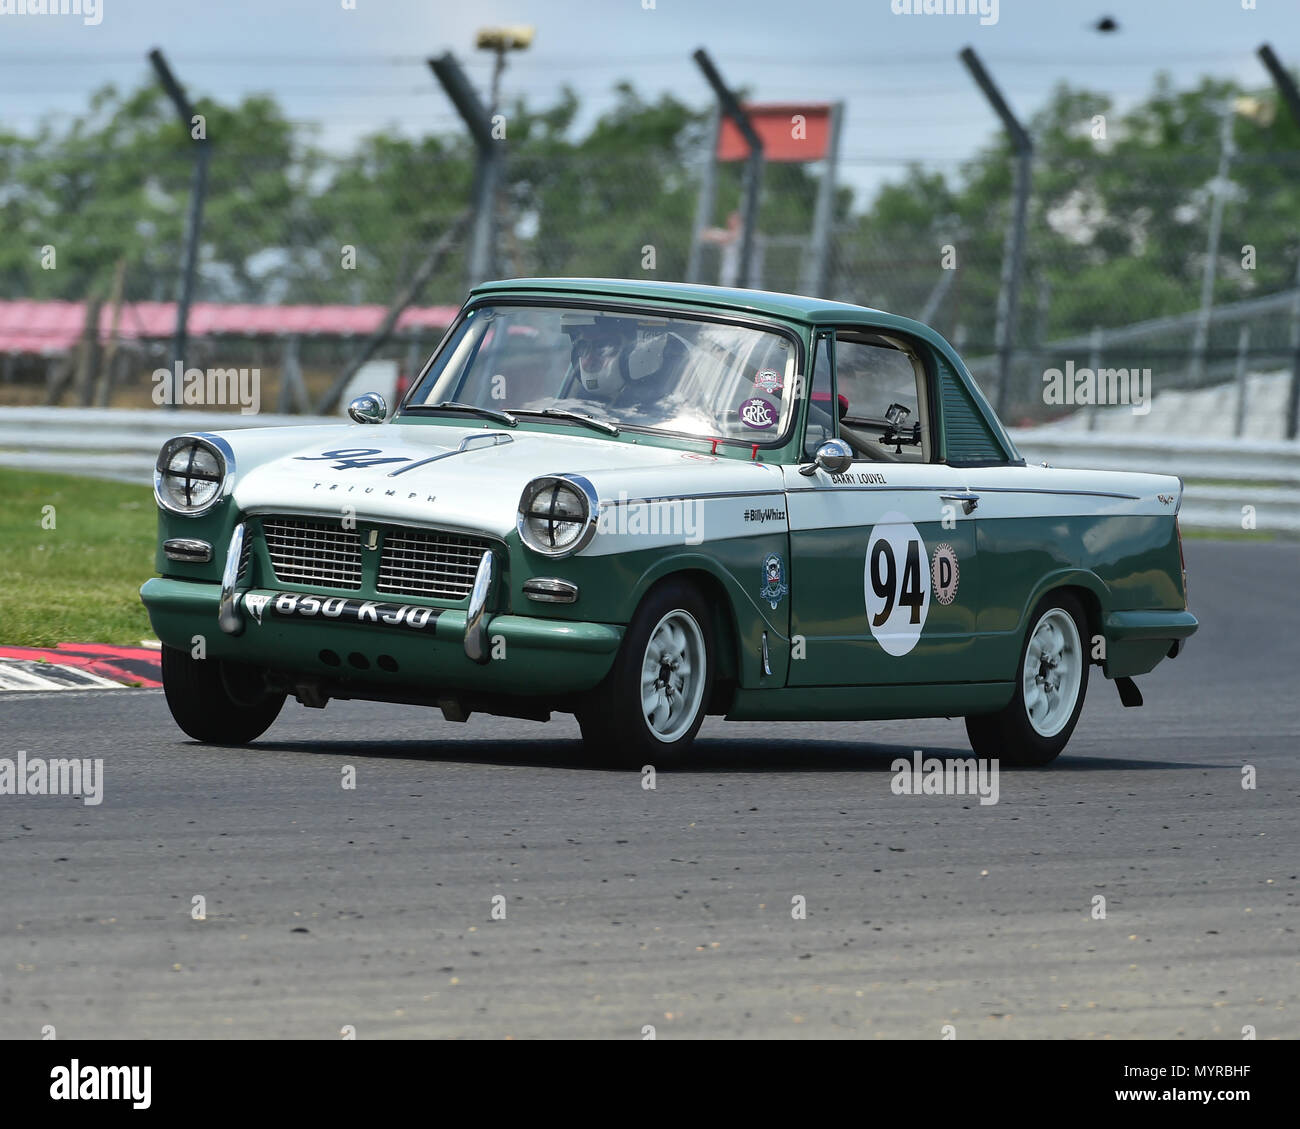 Barry Louvel Triumph Herald Coupe Hrdc Touring Greats Tcr Uk Race